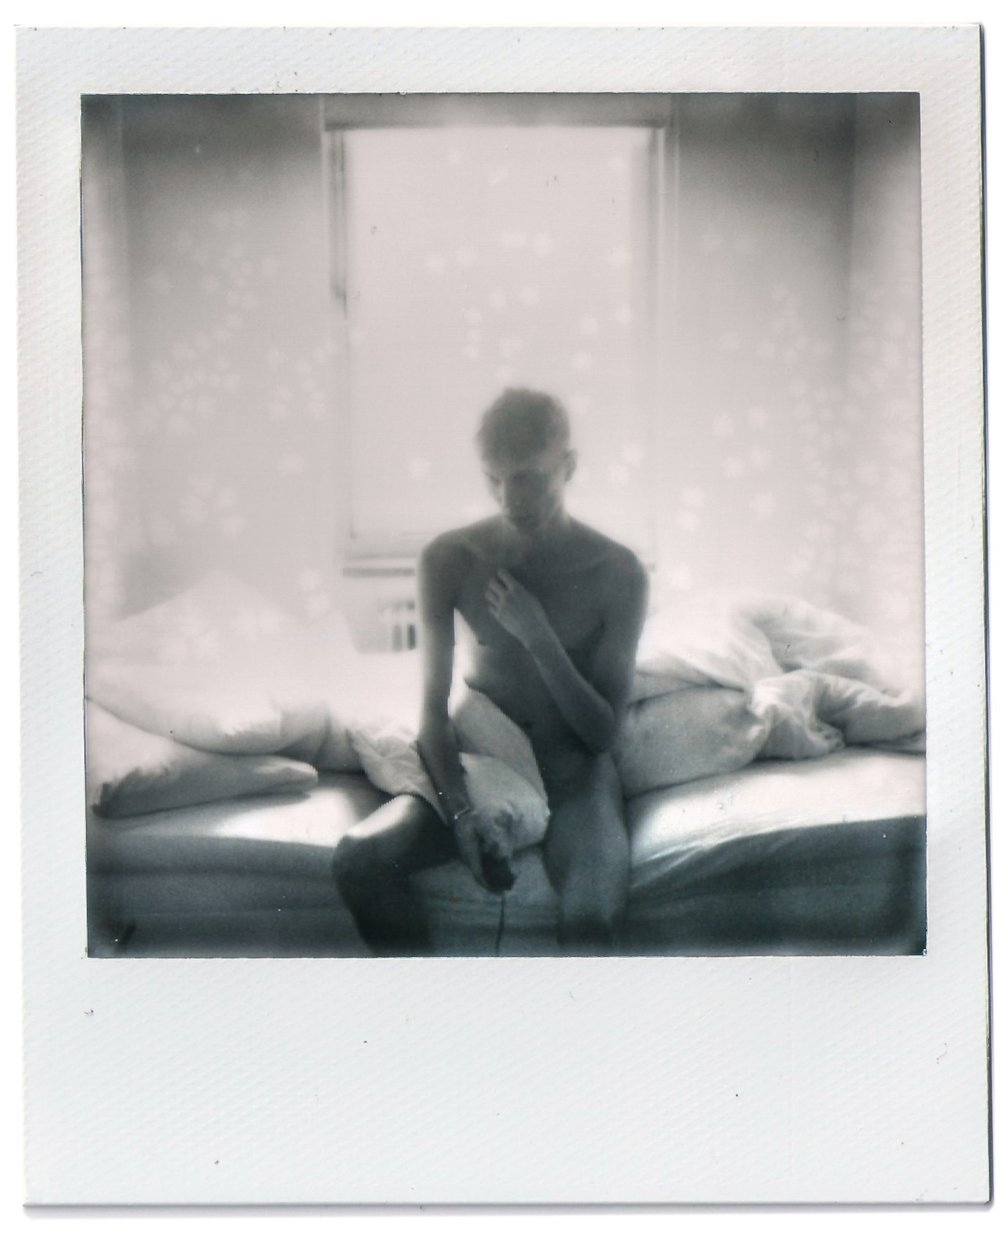 - SELF-PORTRAIT 2015, POLAROID SX-70